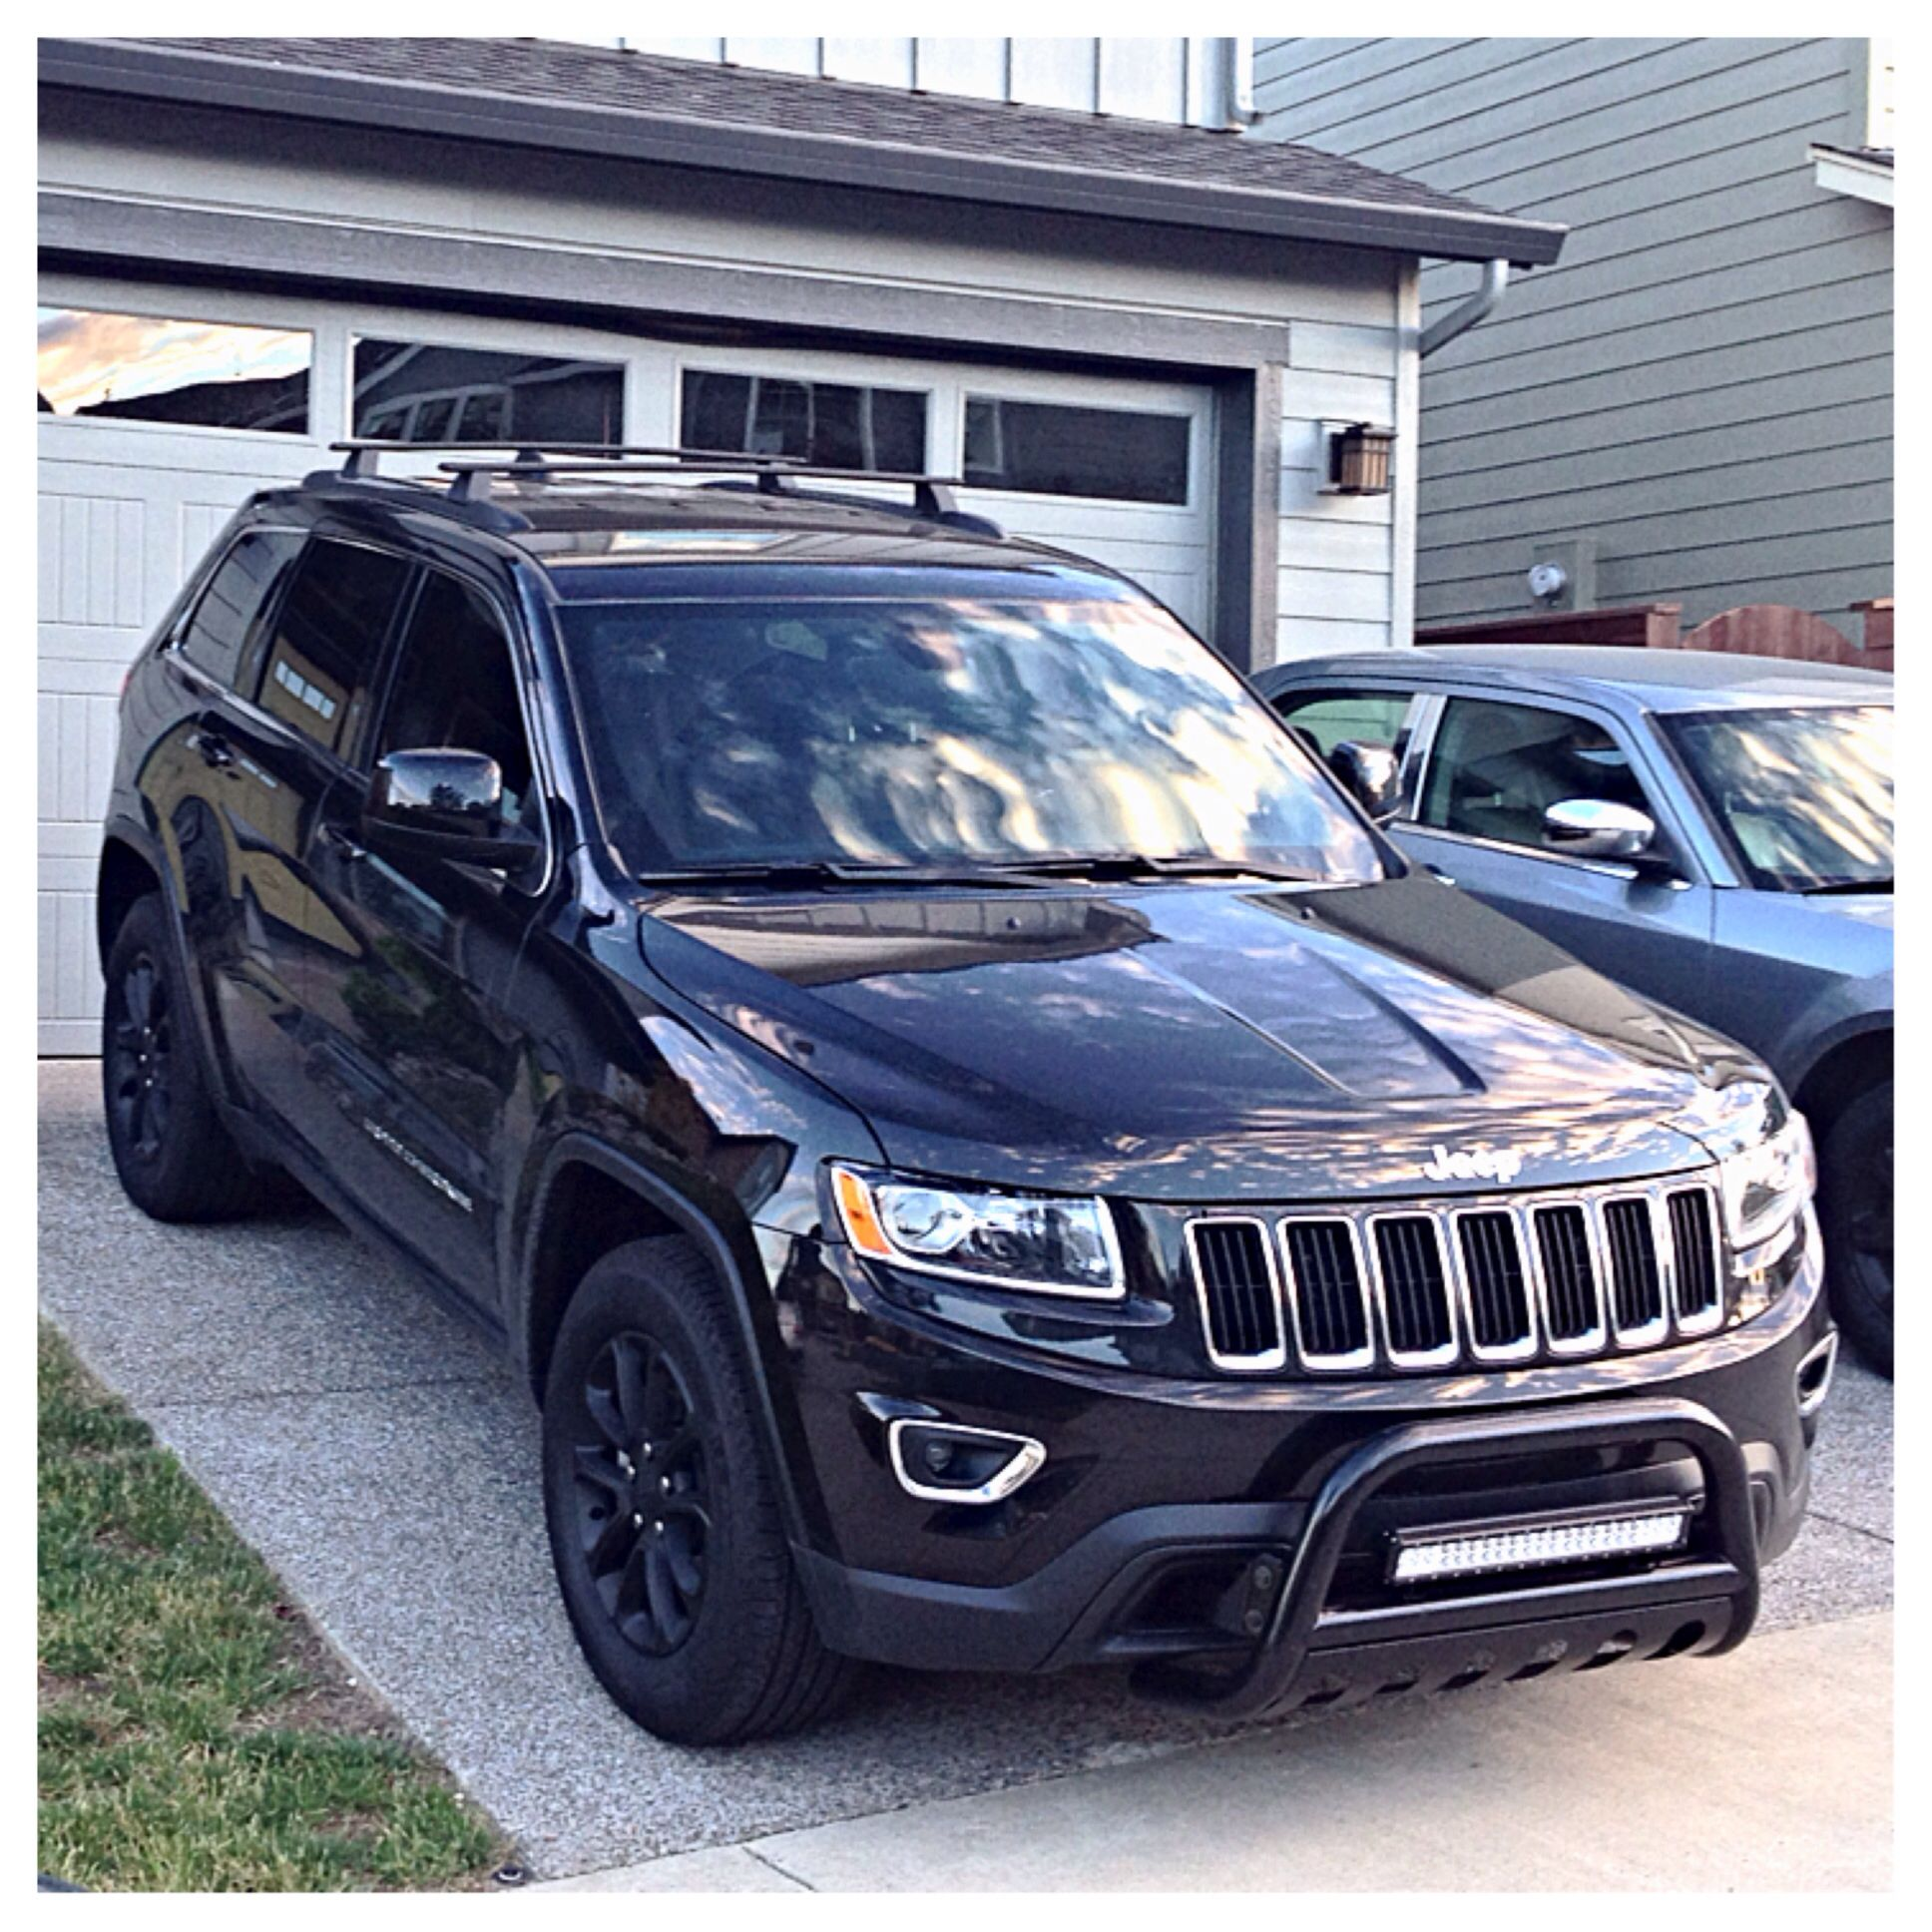 2014 Jeep Grand Cherokee WK2 black plasti dip bull bar LED light